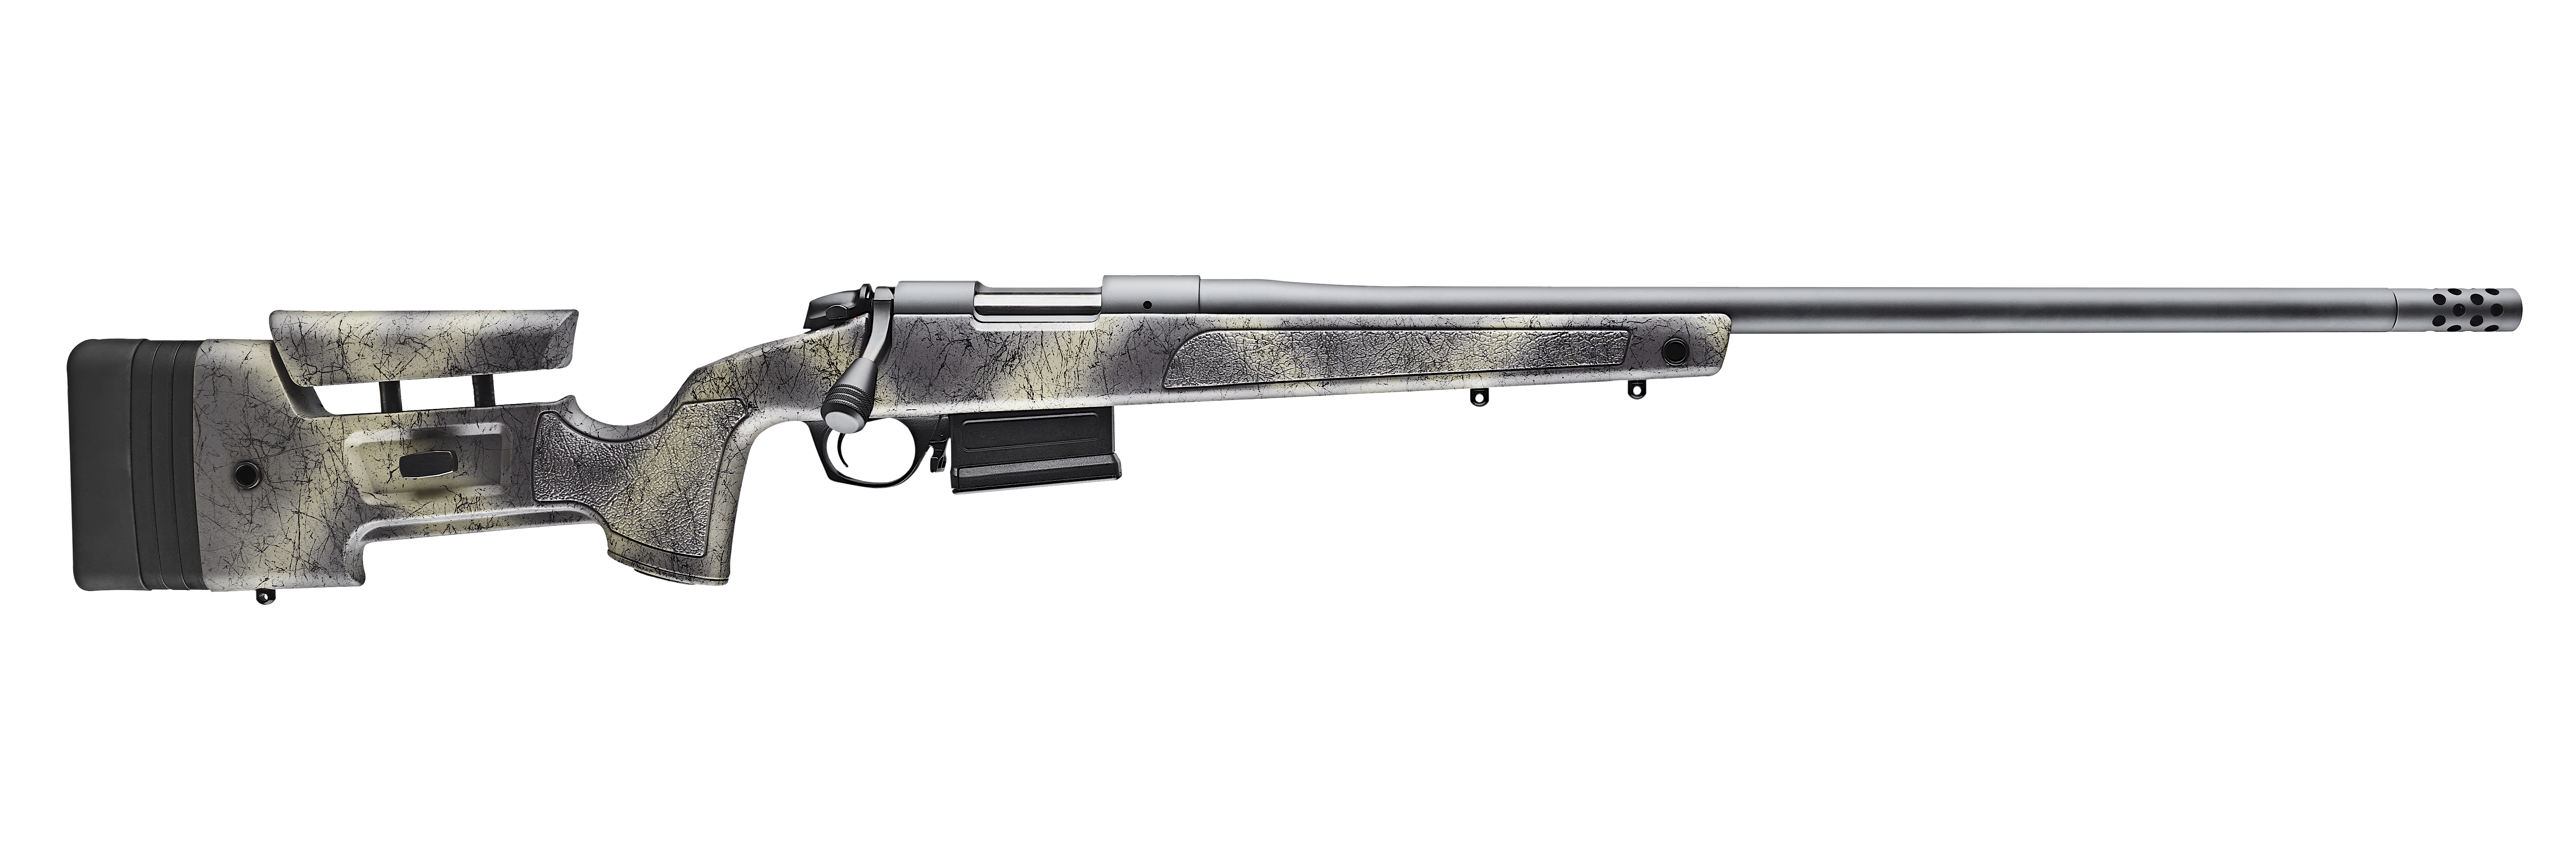 BERGARA HMR WILDERNESS